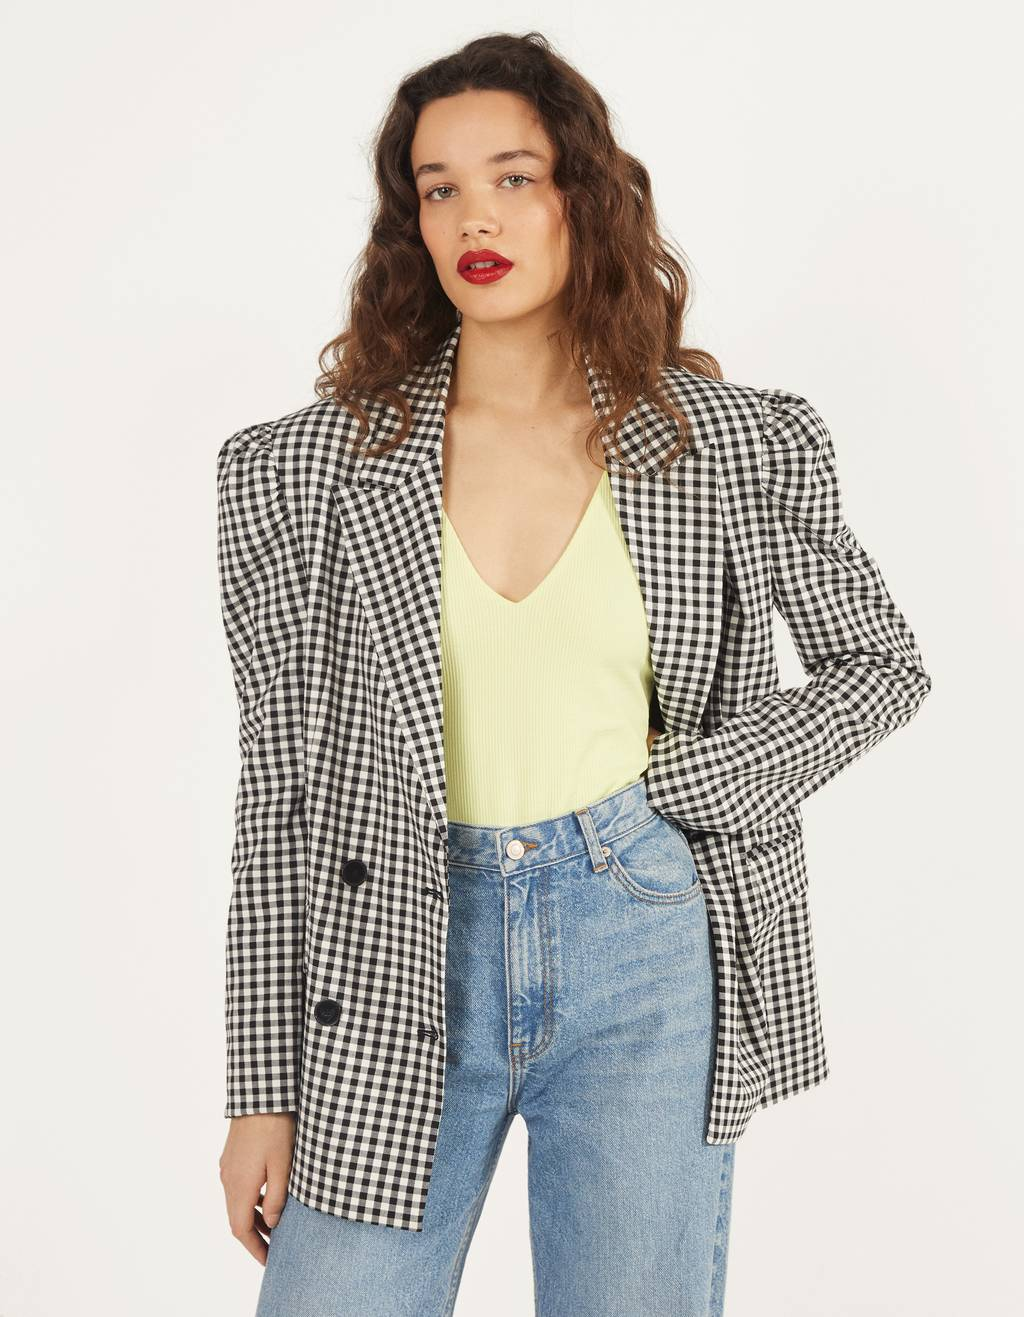 Voluminous blazer with gingham check print